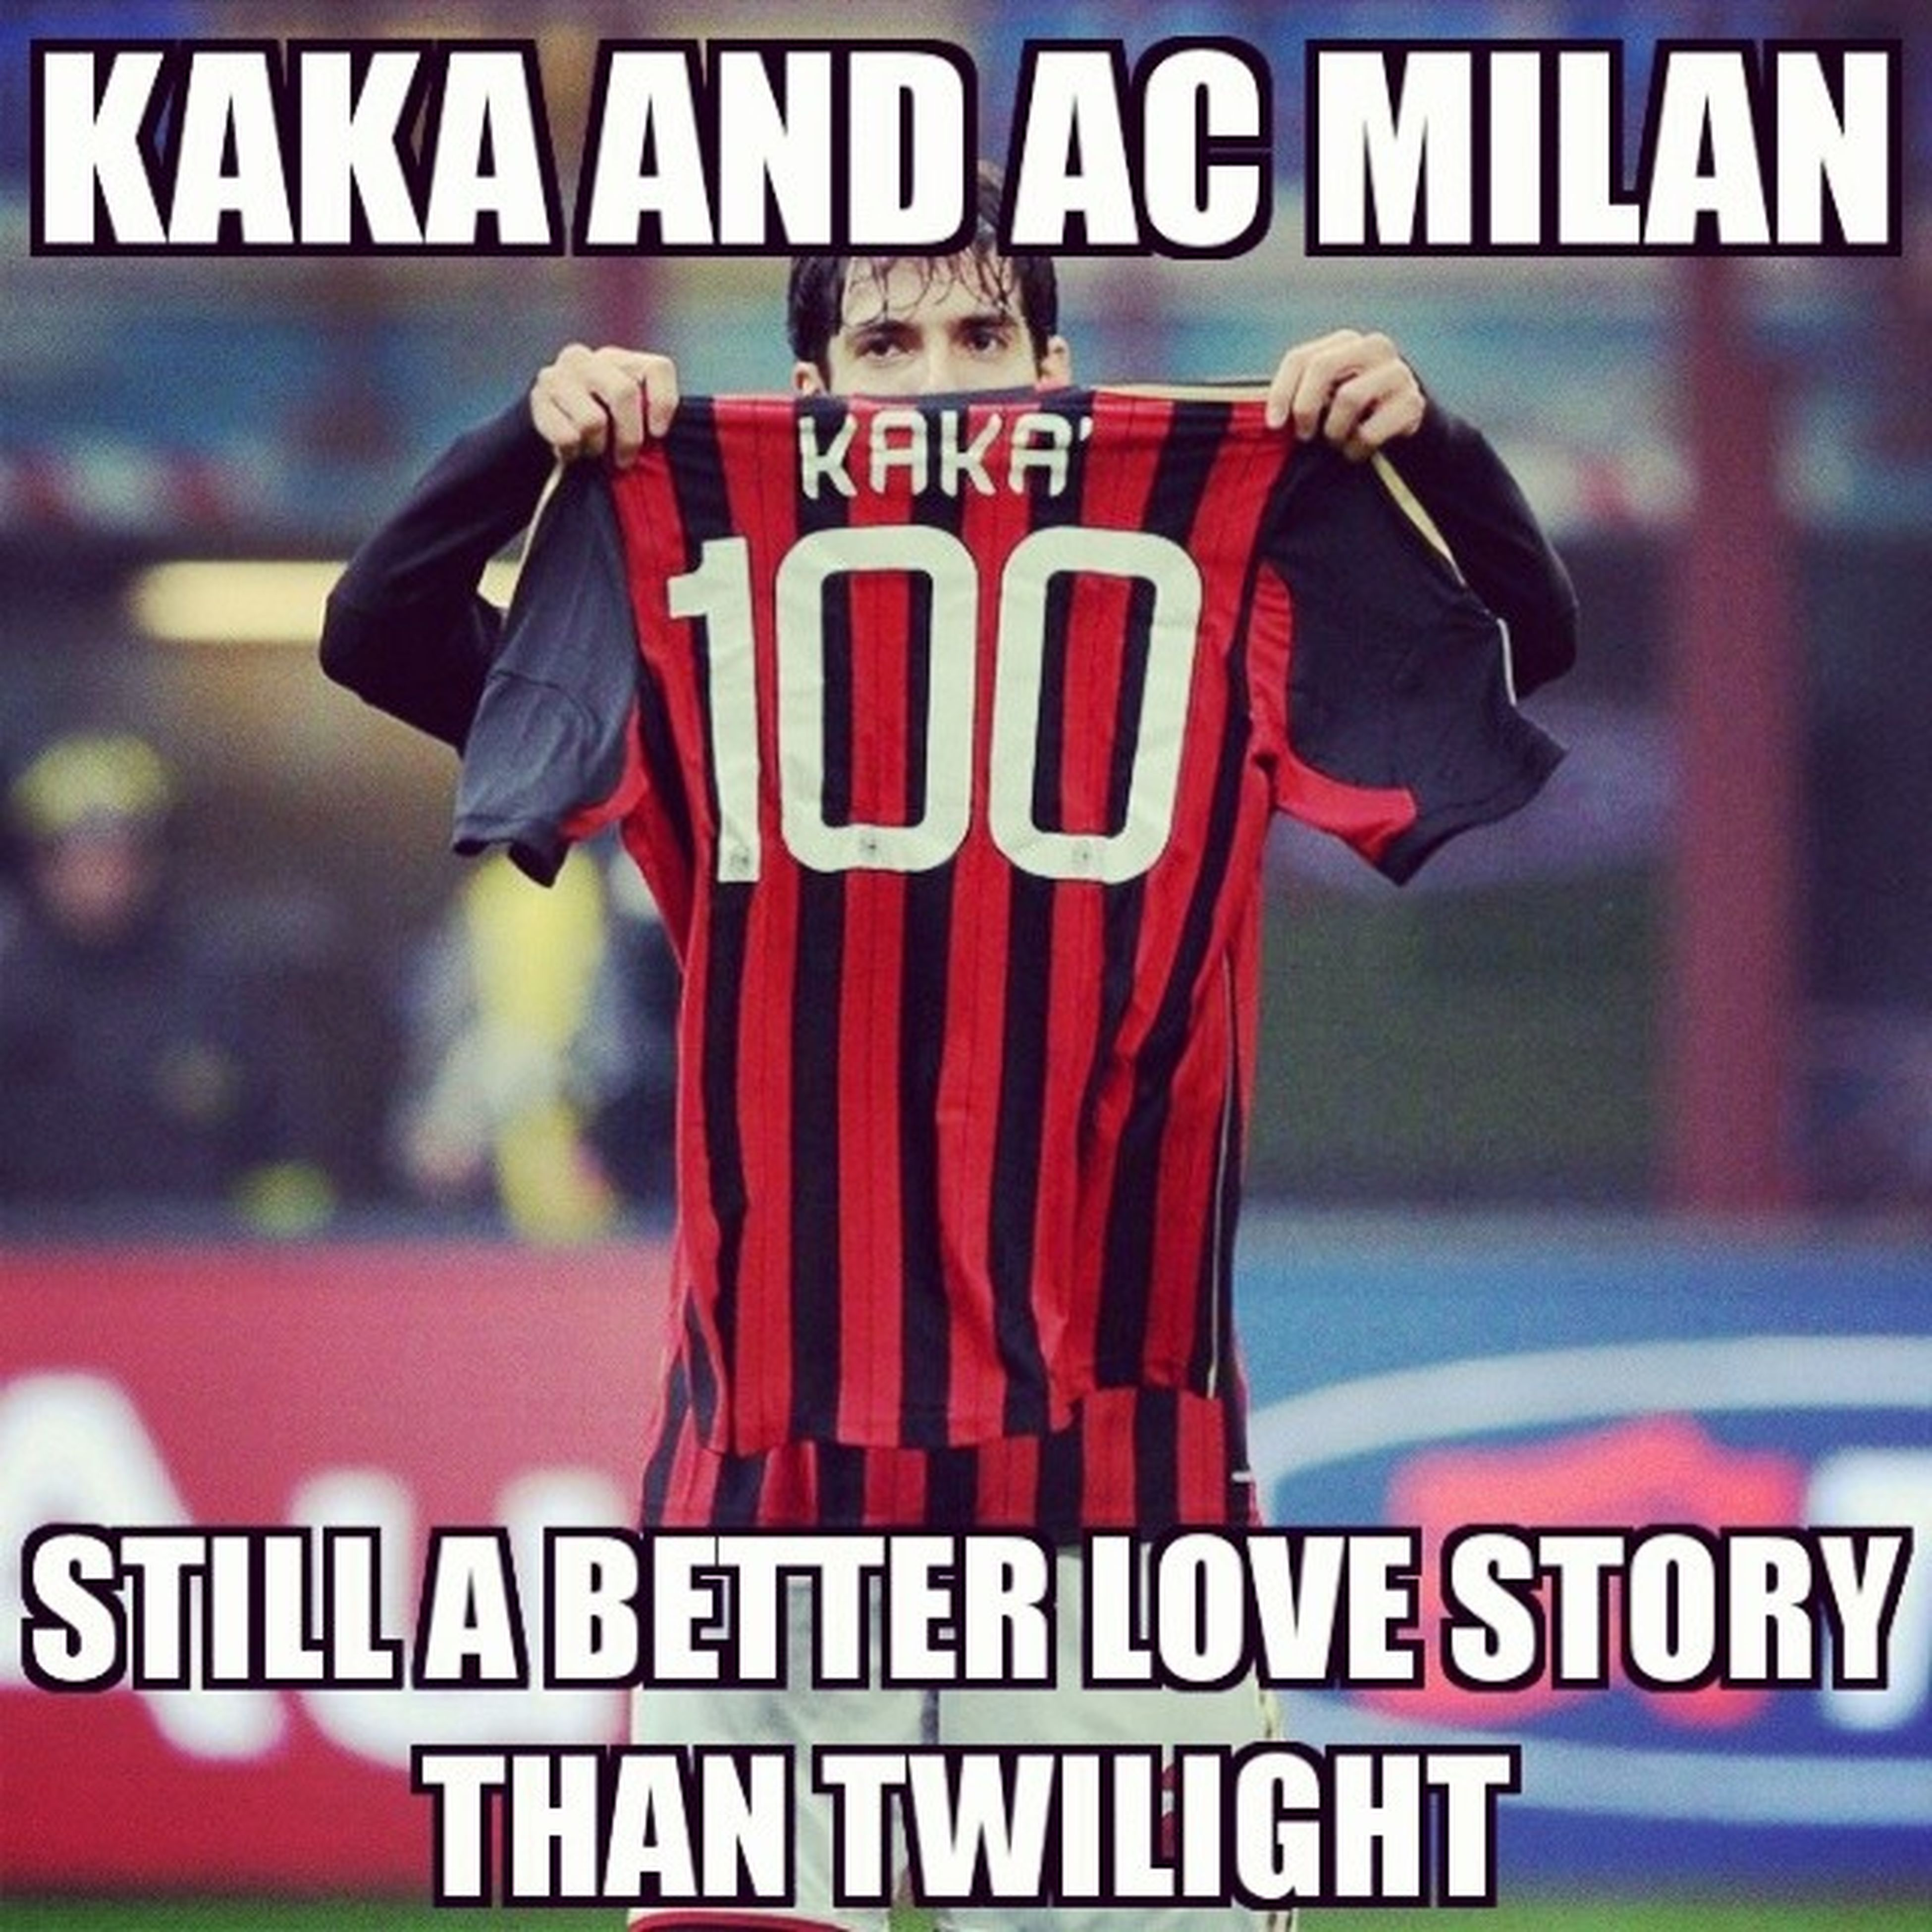 Milan will never forget your name. You will forever remain one of the best players in the history of the red and black and an absolute fans' favourite. Myfavourite Ourprince OurHero @kaka @acmilan